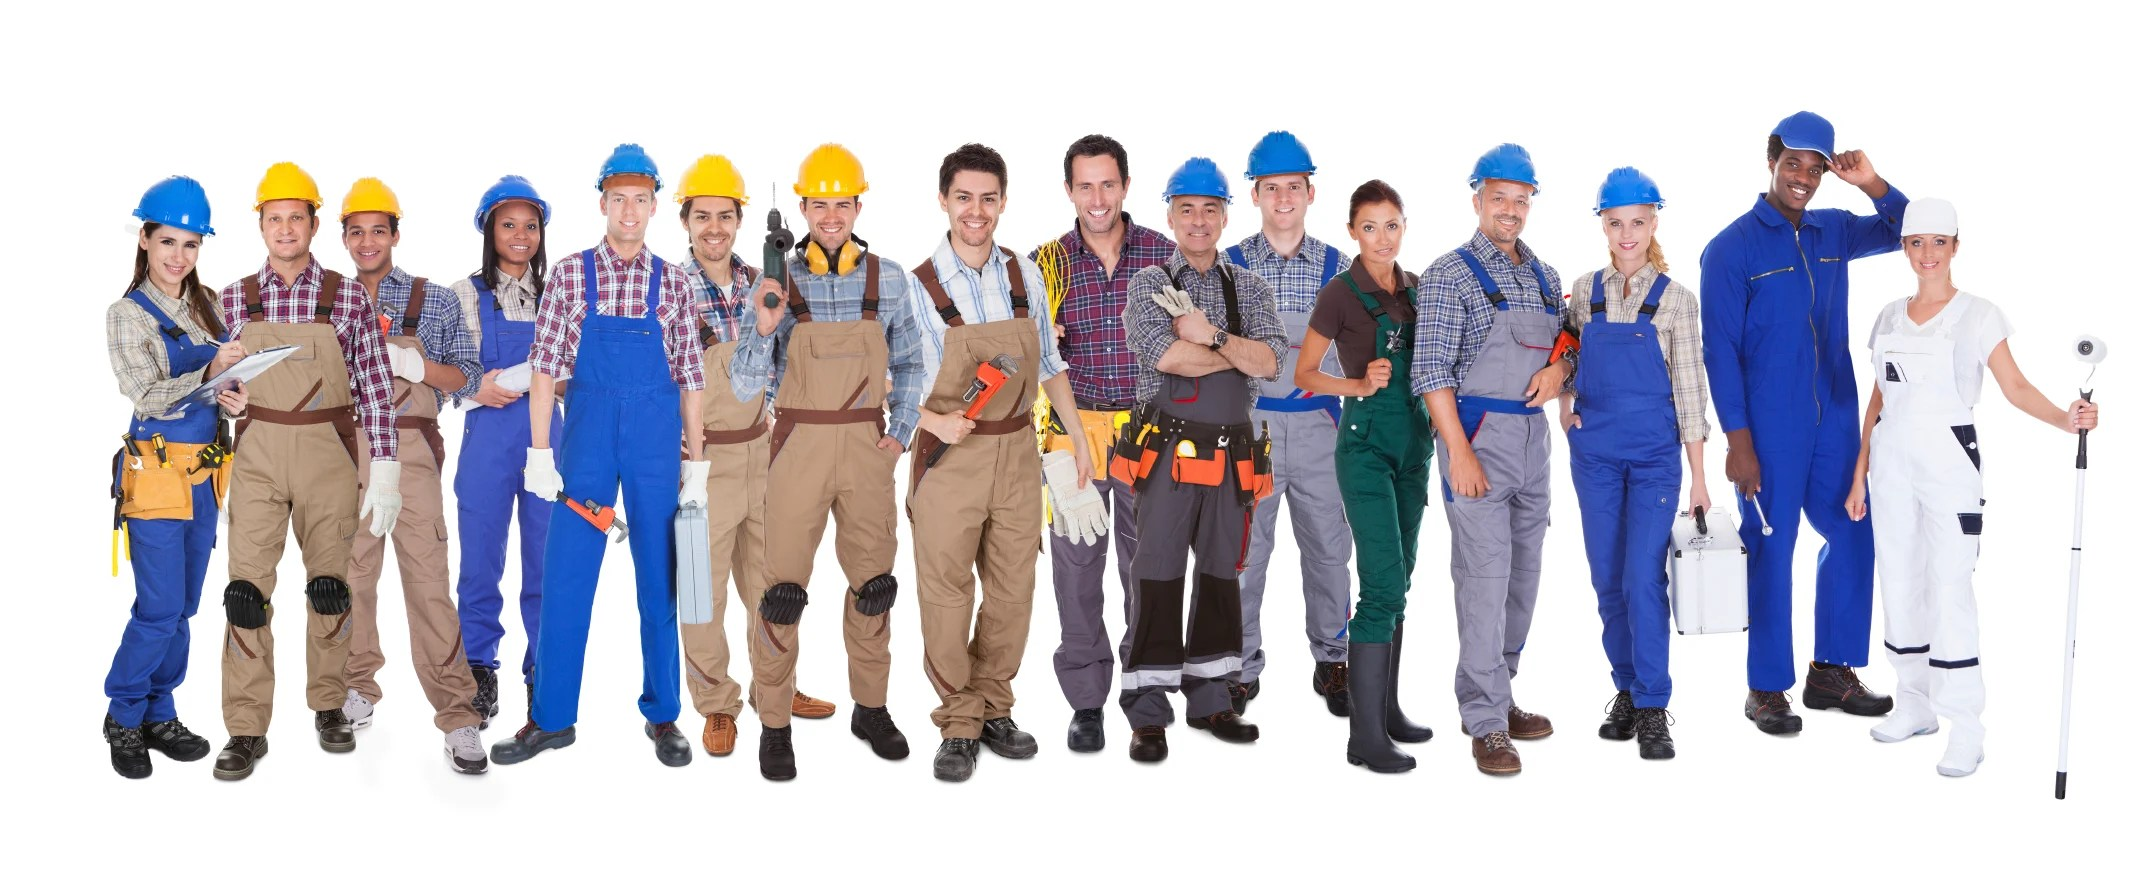 Trade Jobs Benefits Of Working In The Skilled Trades: Job Availability